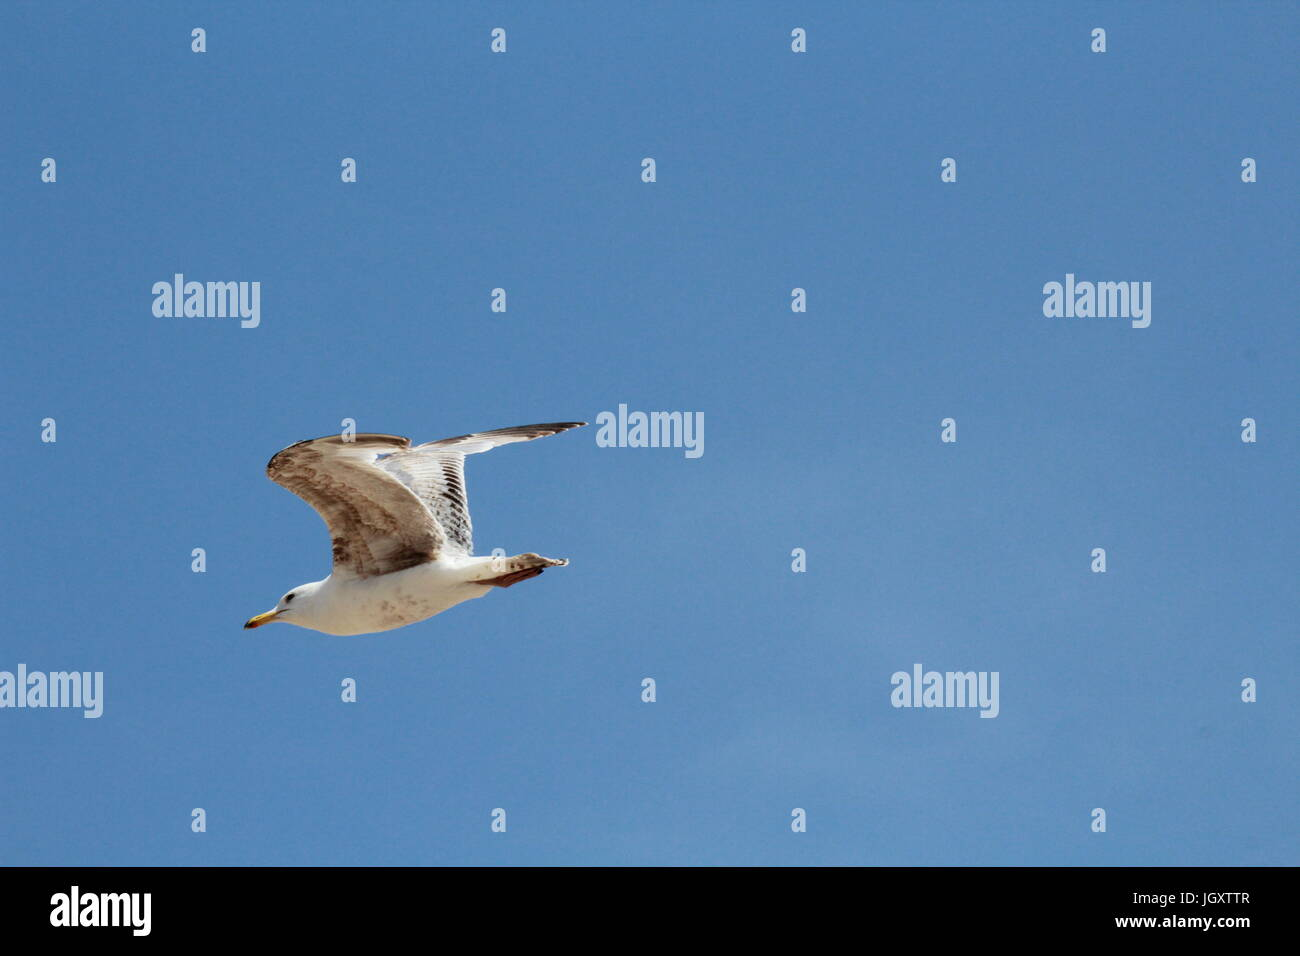 Seagull flying in blue sky - Stock Image